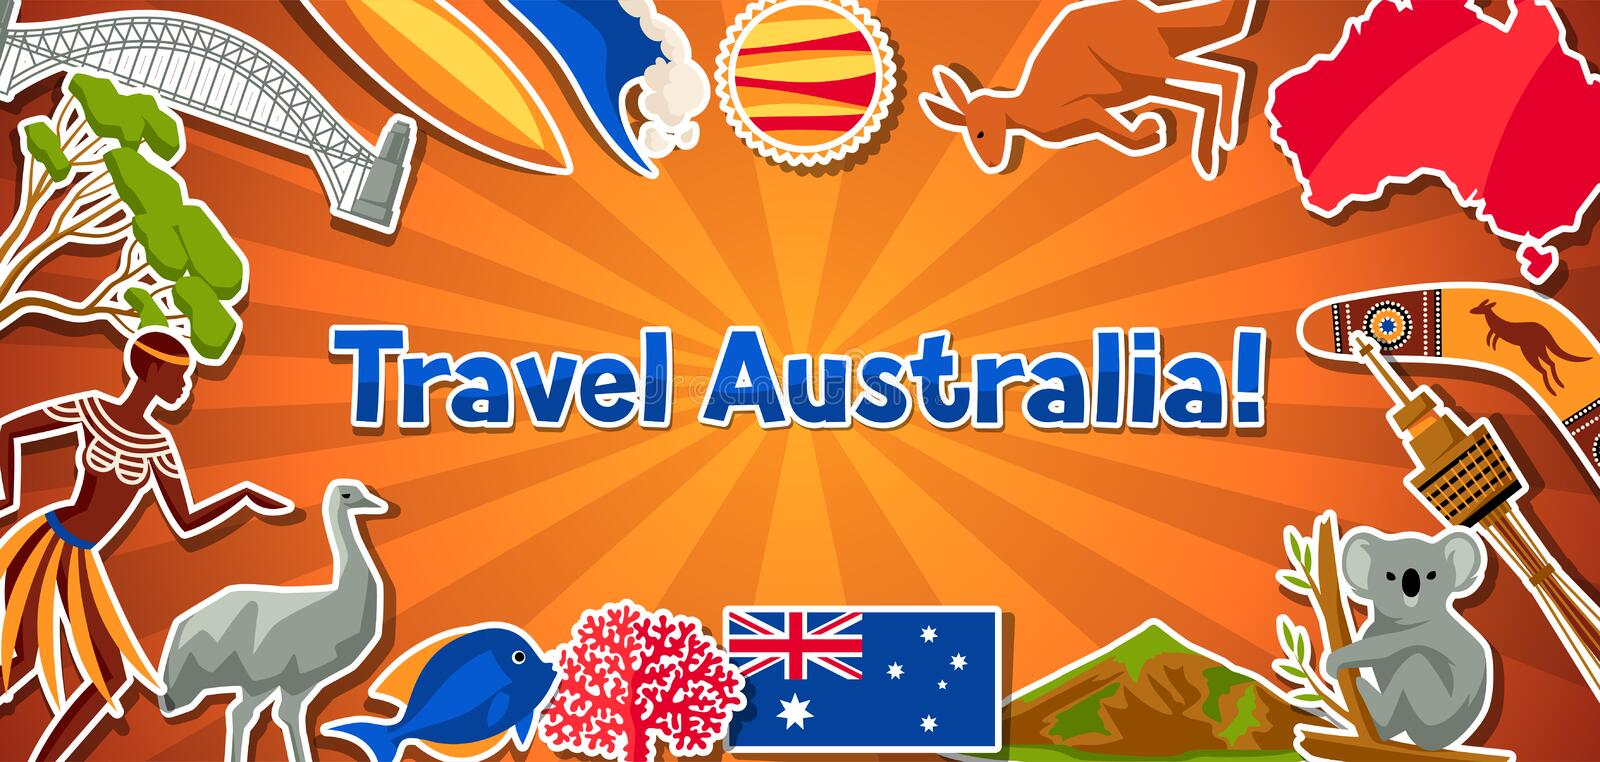 Download australia banner design australian traditional sticker symbols and objects stock vector illustration of